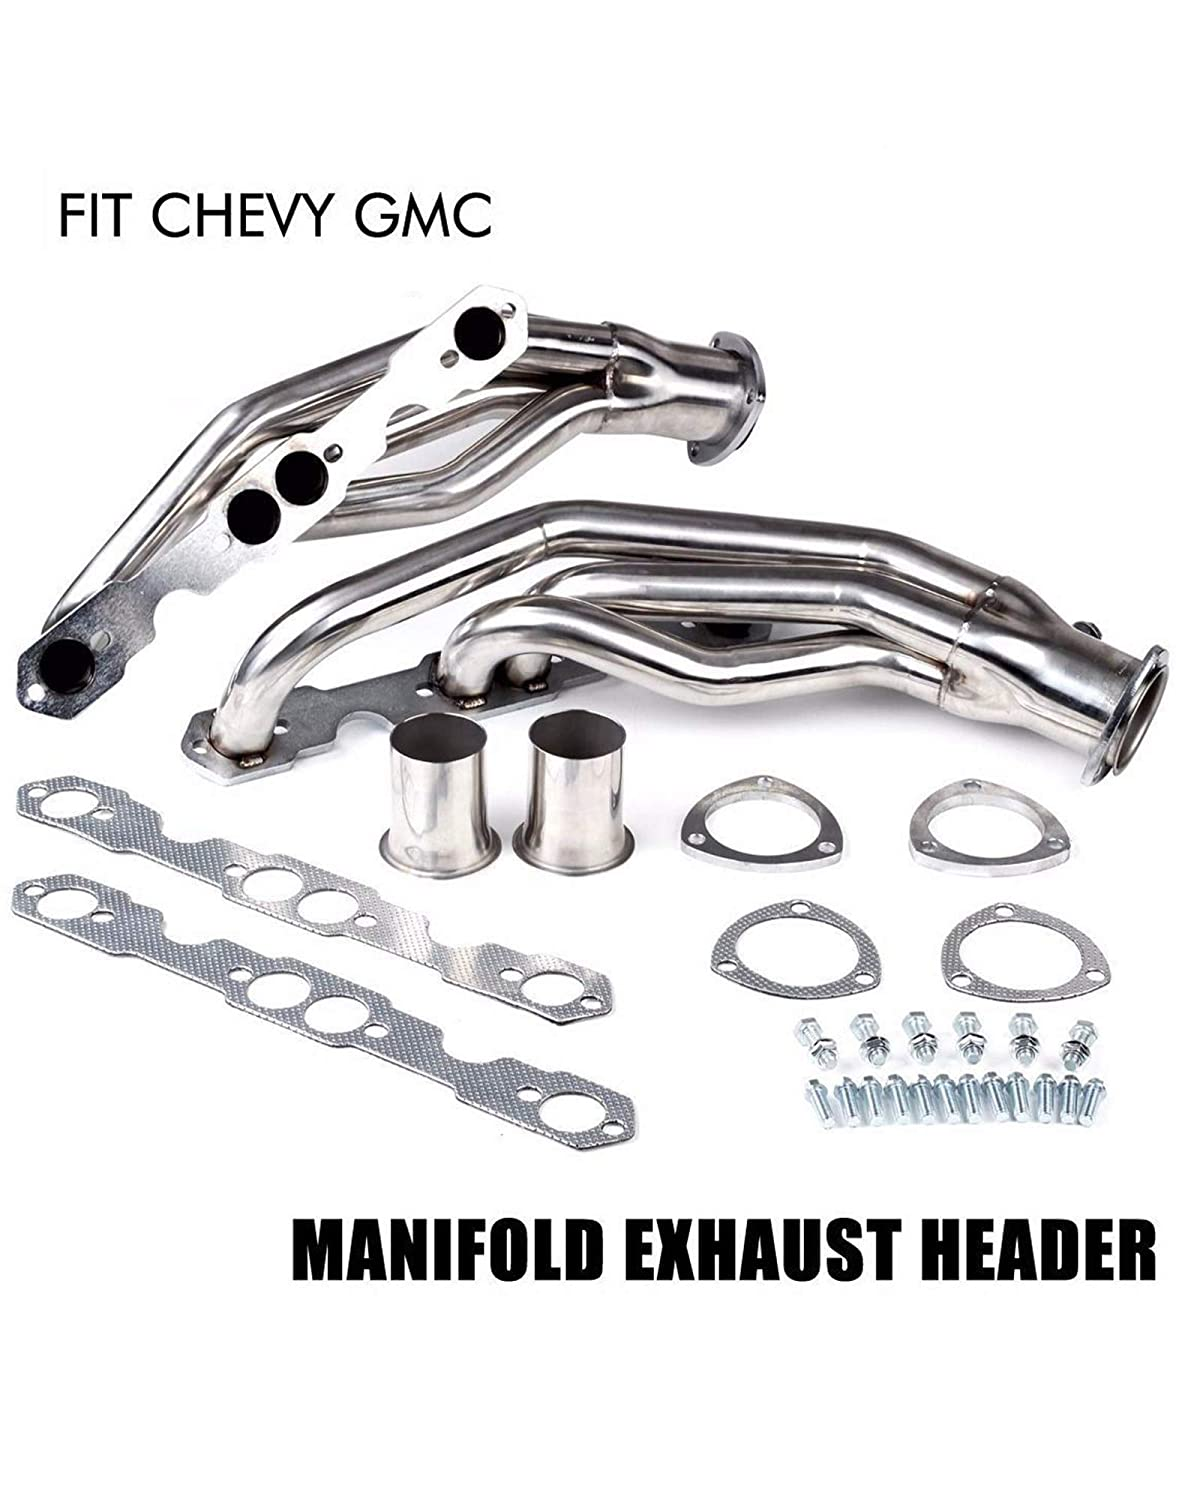 BLACKHORSE-RACING Manifold Exhaust Headers Stainless Steel Fit 1988-1997 Chevrolet C1500 GMC Pickup Chevy C2500 Truck 305 350 5.7L